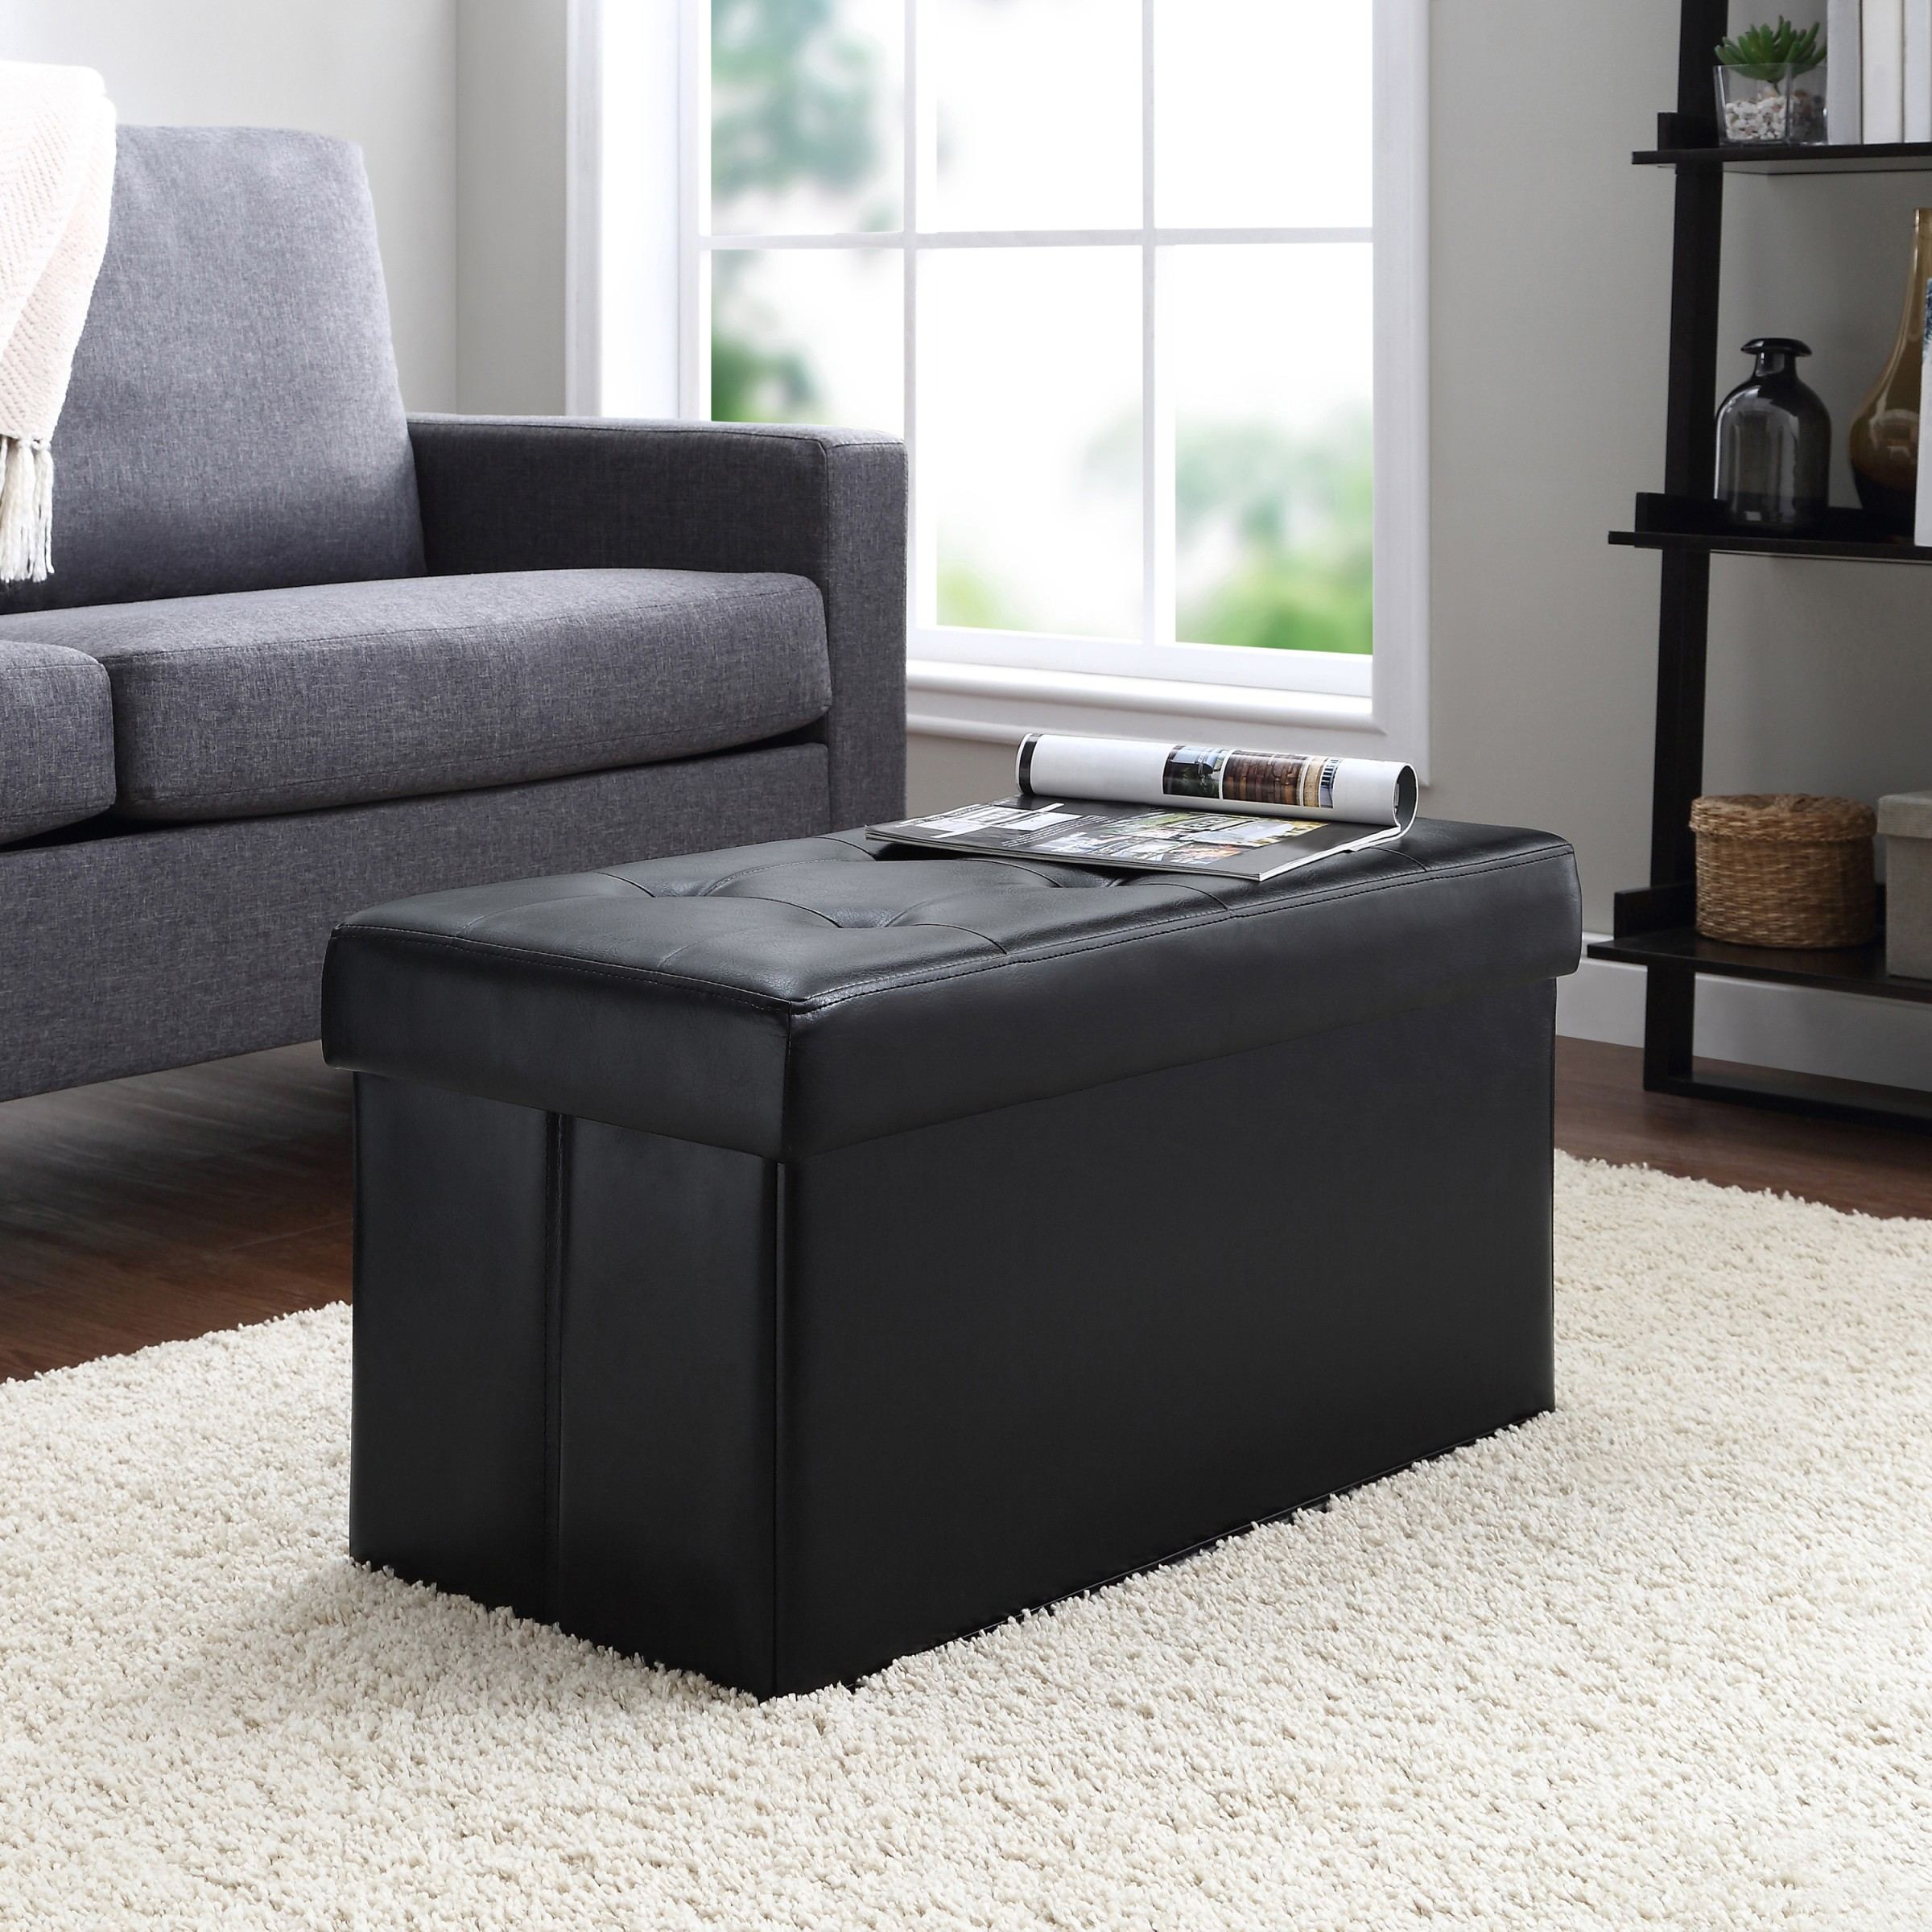 mainstays collapsible storage ottoman quilted black faux leather walmart com